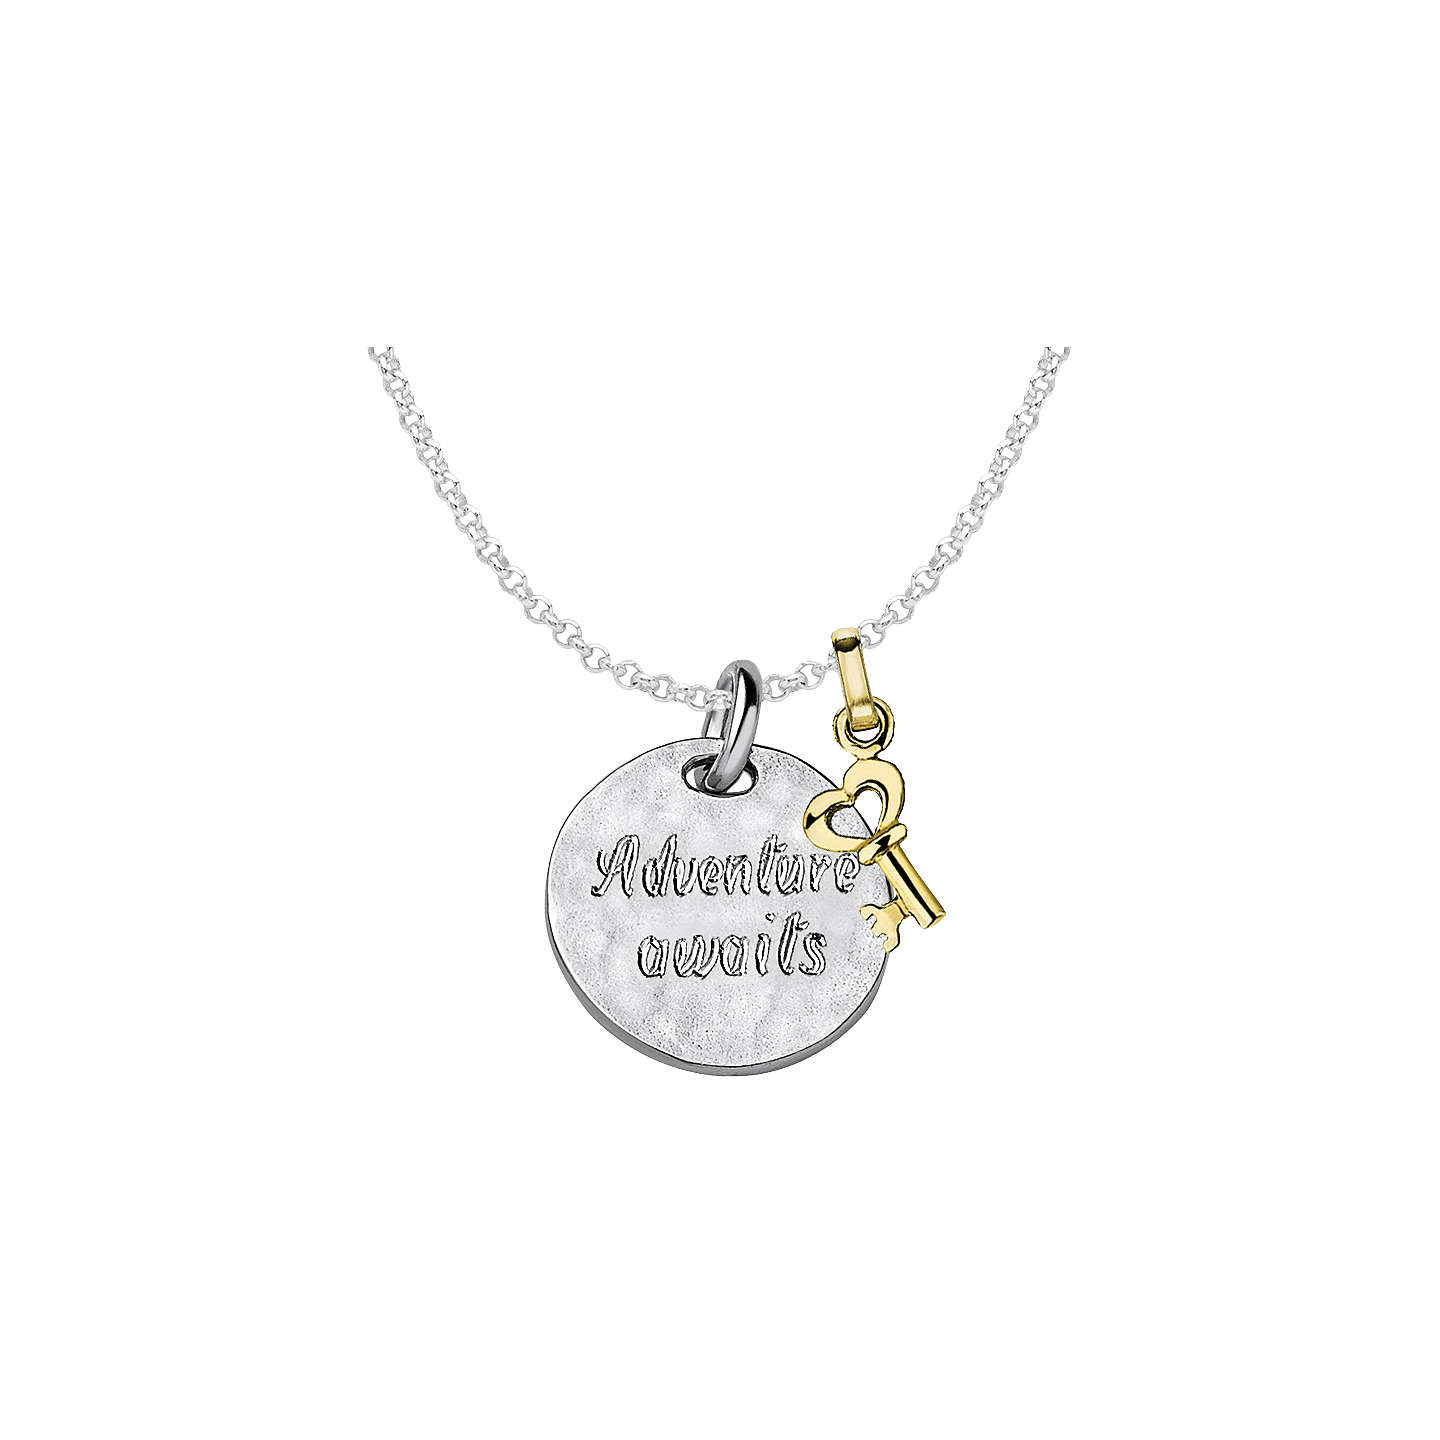 and hei necklace rubedo fit pendant silver ed jewelry constrain with co hearts tiffany necklaces in wid id key sterling pendants mom tag heart fmt